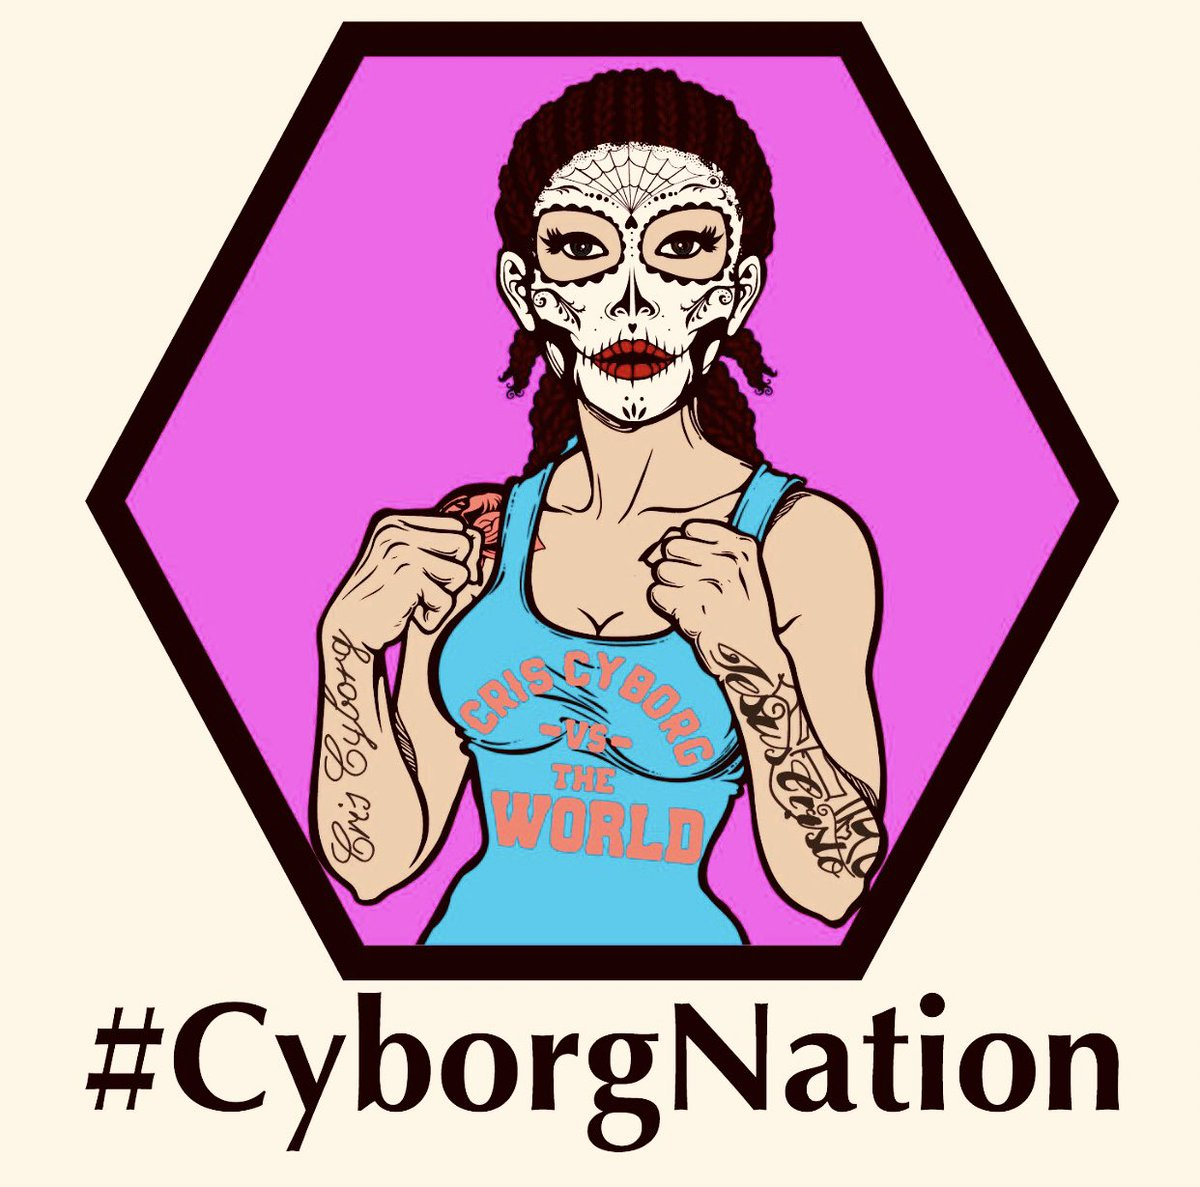 Random tweet of something I started working on of @criscyborg! Not finished with it yet just not sure what else I want to do to it yet! 😂 Thought I would share it as is for now! #CyborgNation #CrisCyborg